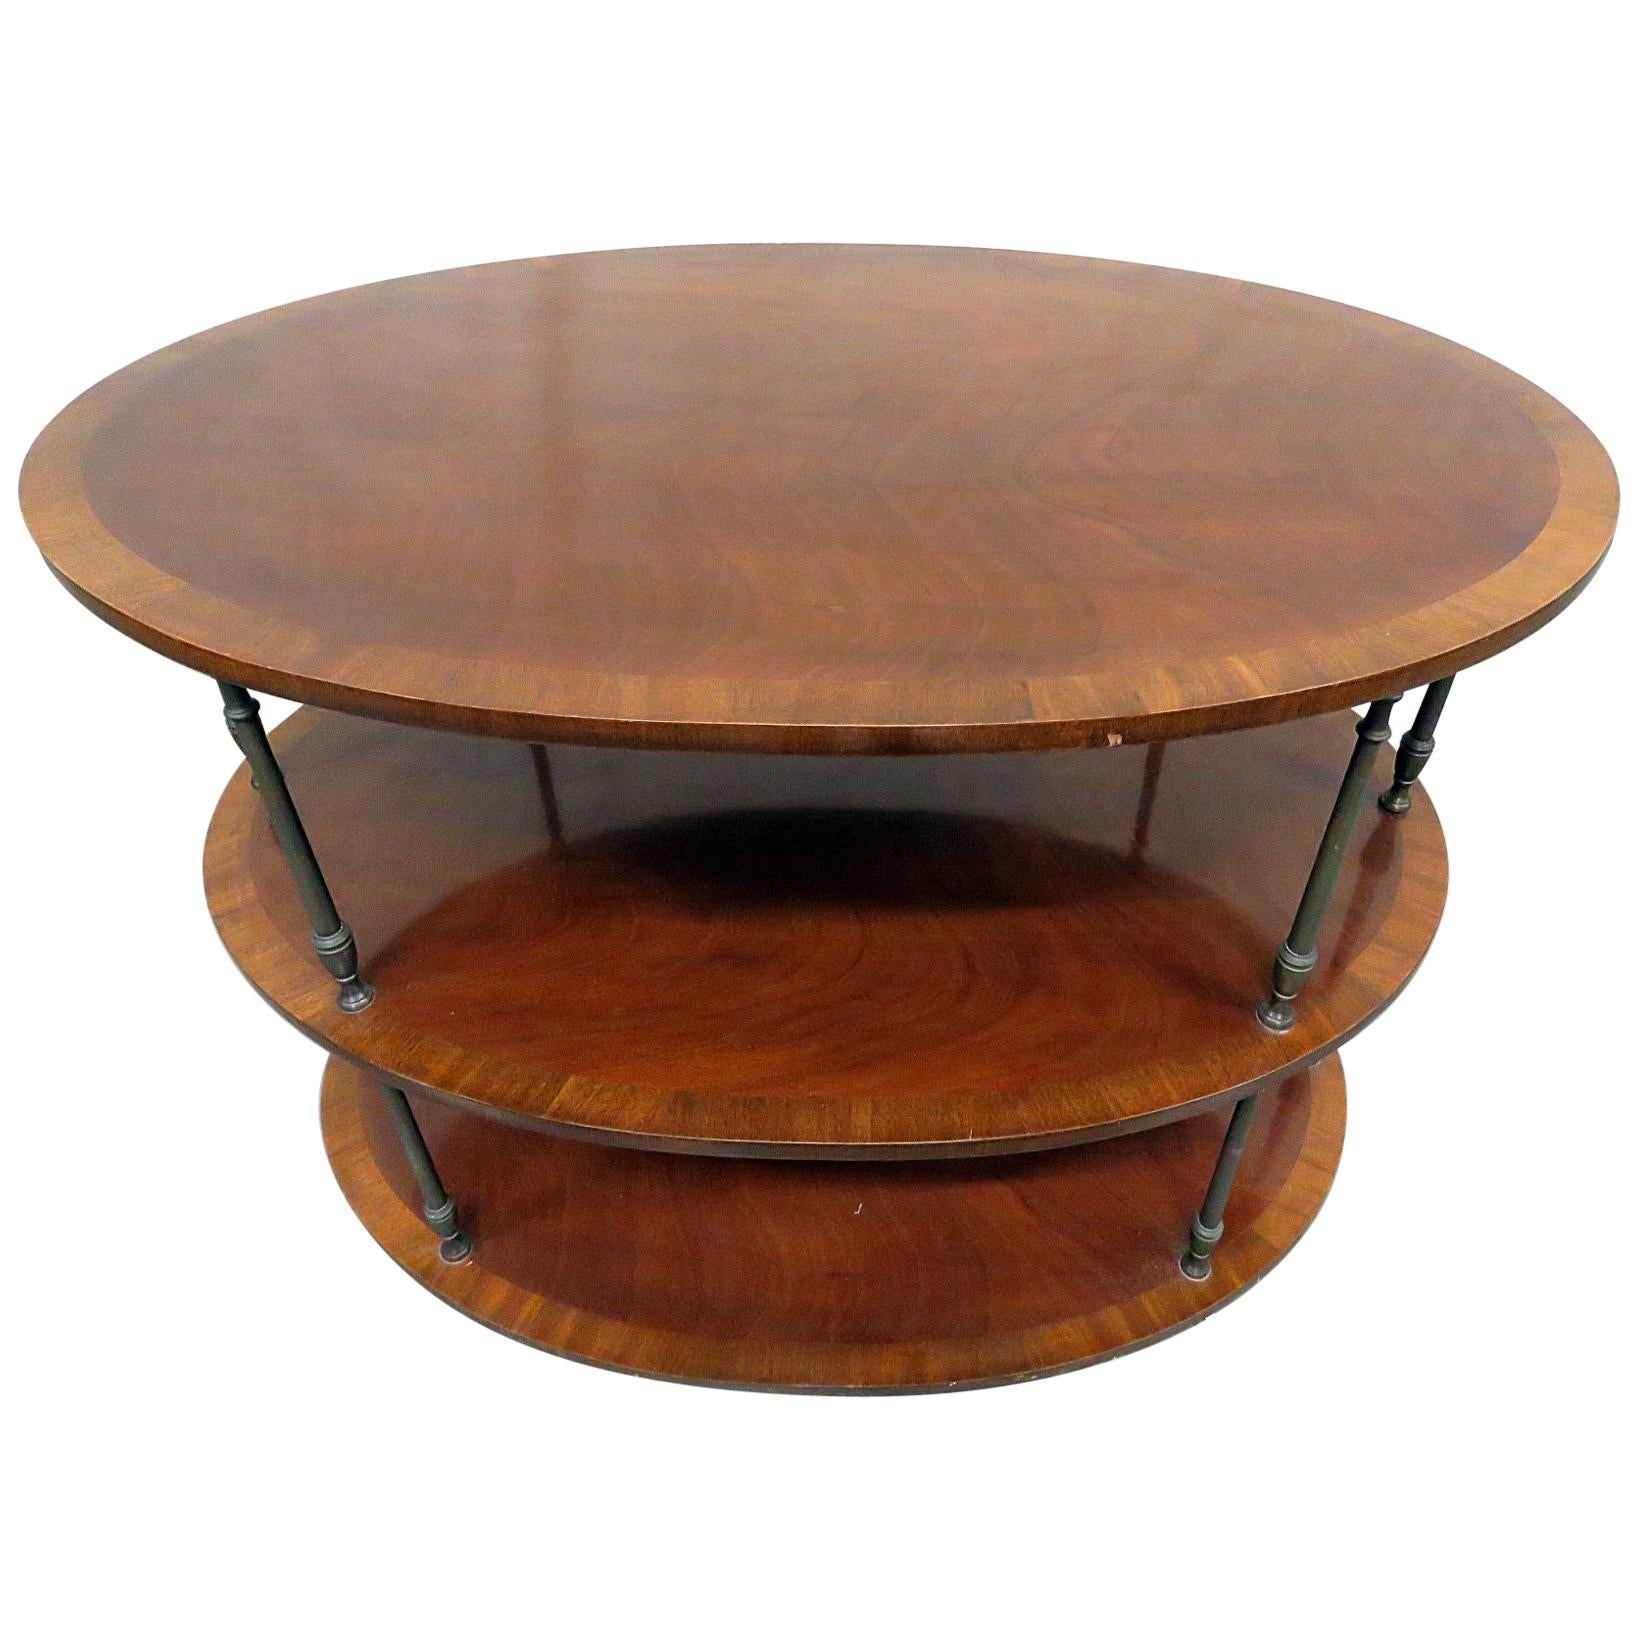 English Regency Style Satinwood and Mahogany Brass Inlaid Dessert Side Table